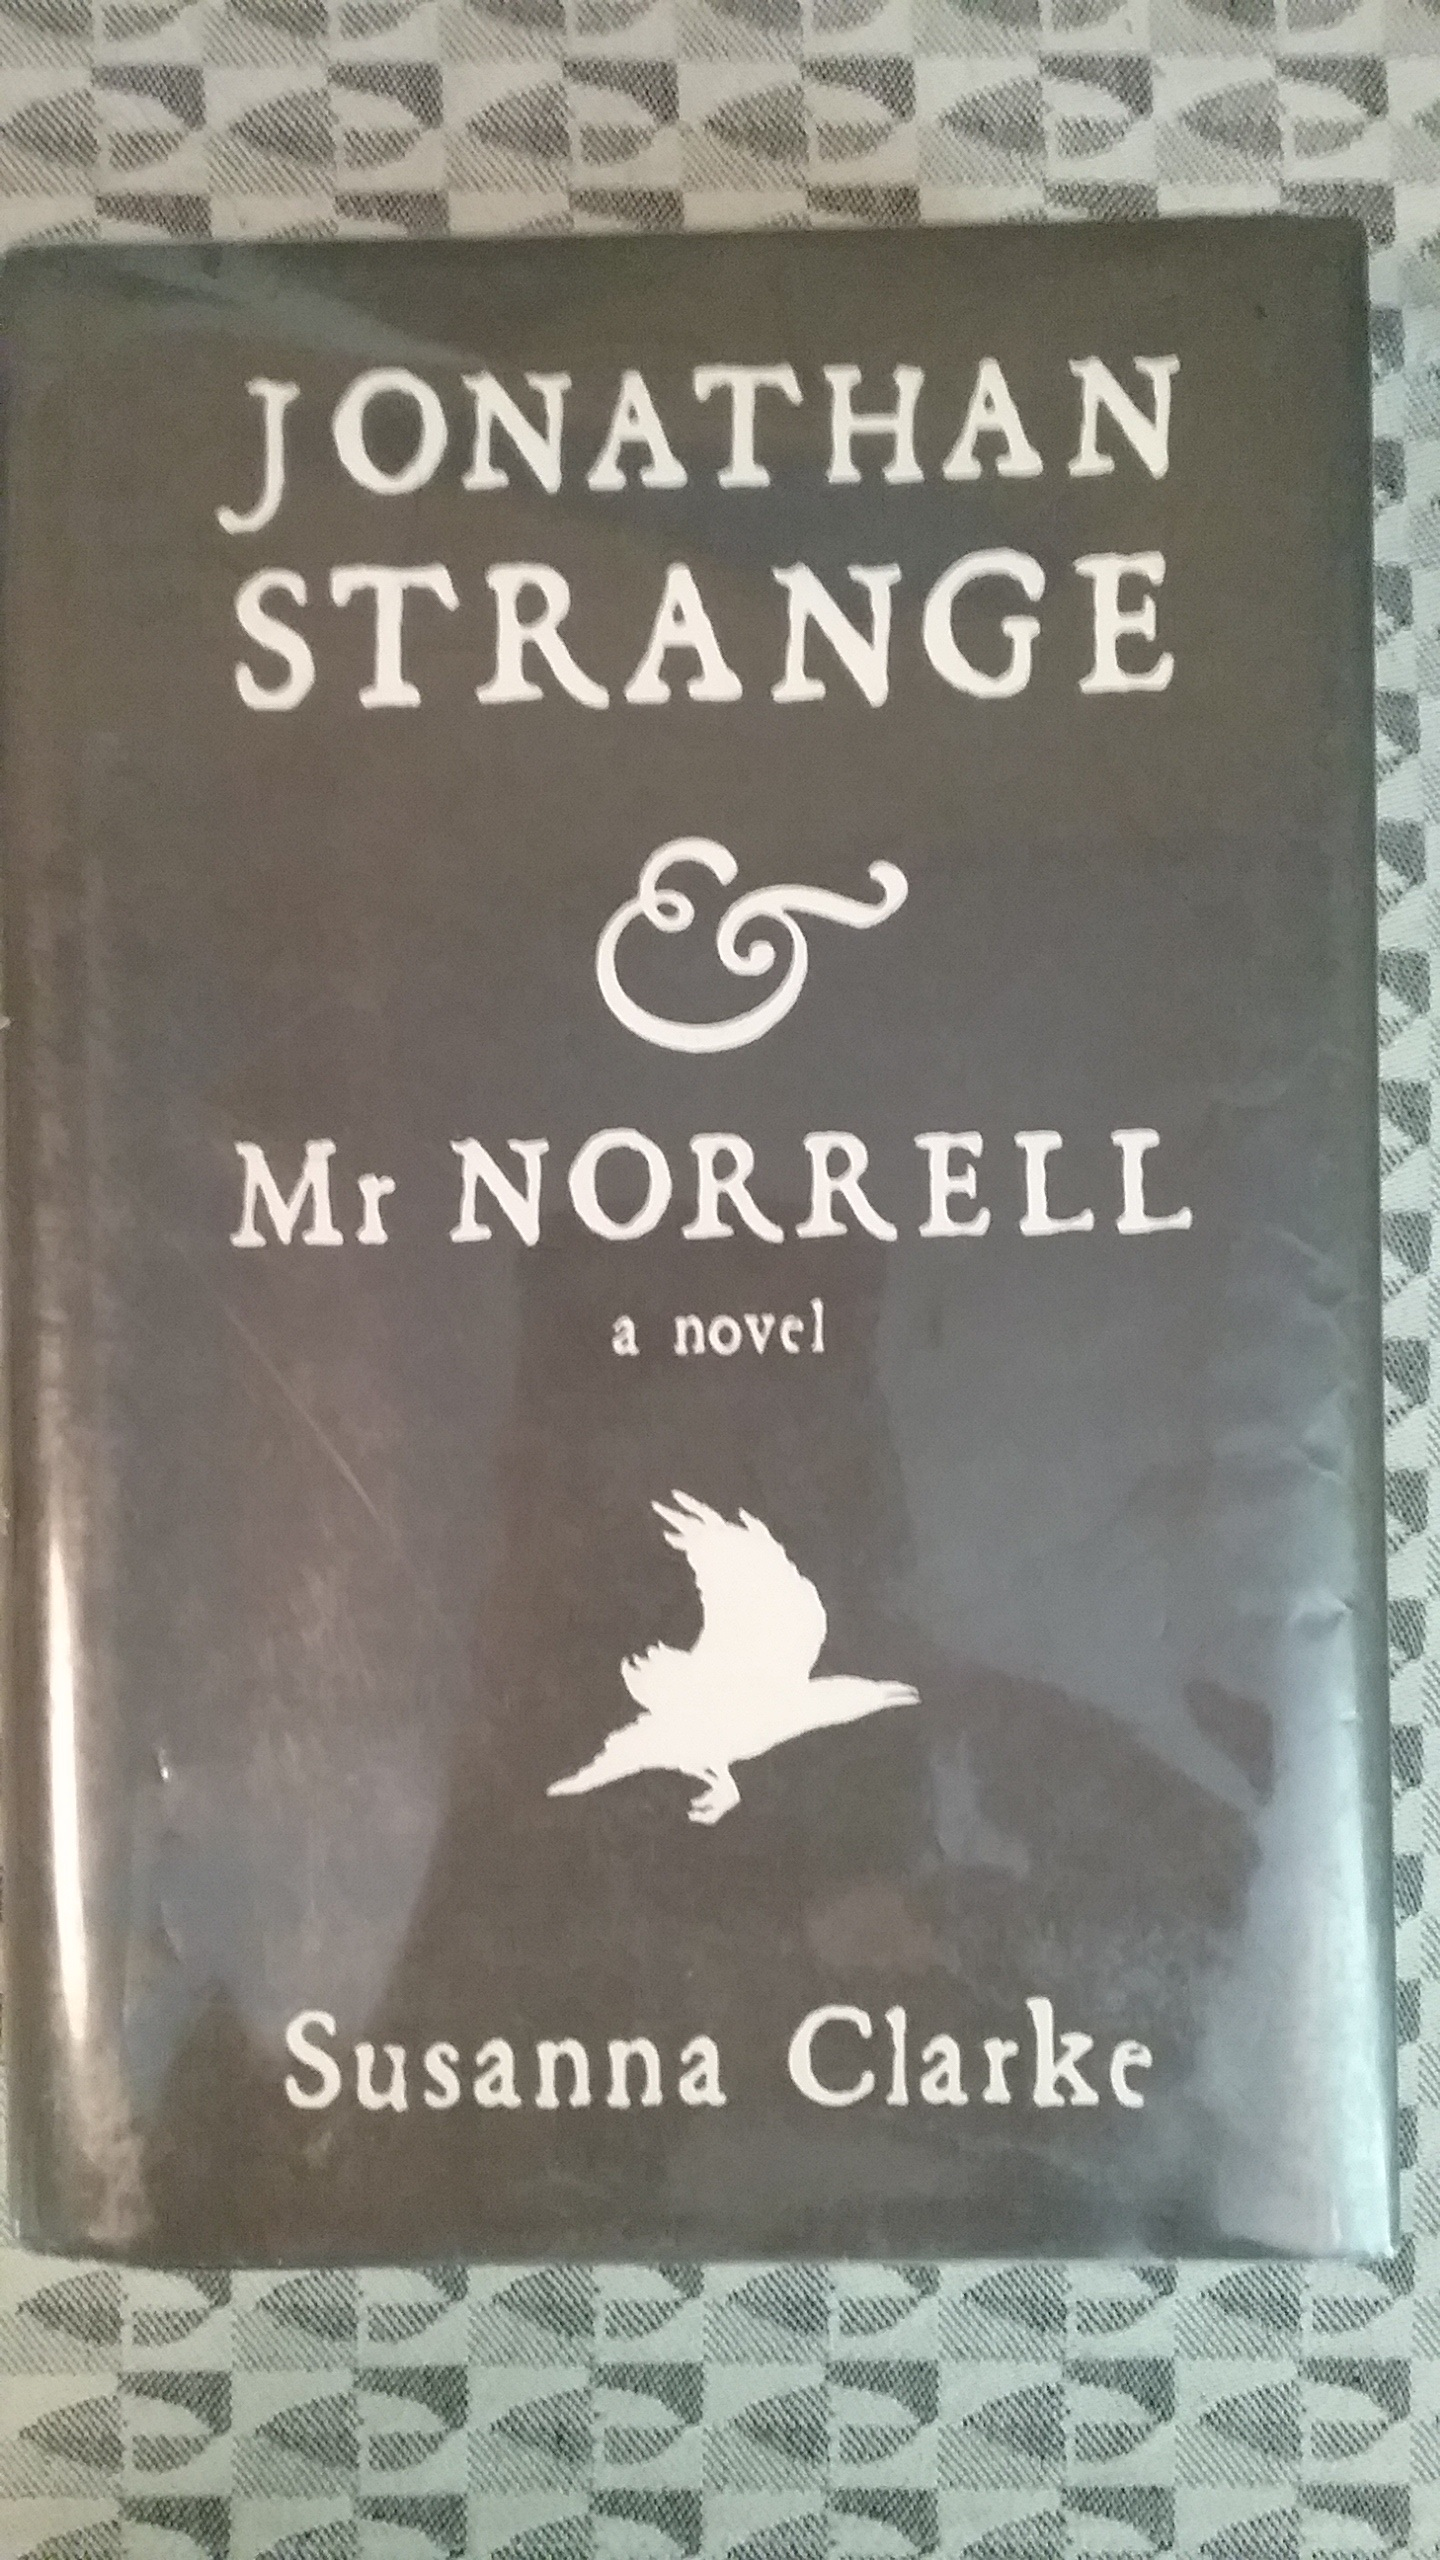 Jonathan Strange & Mr Norrell by Susanna Clarke. Photo by Mary Warner, 2017.